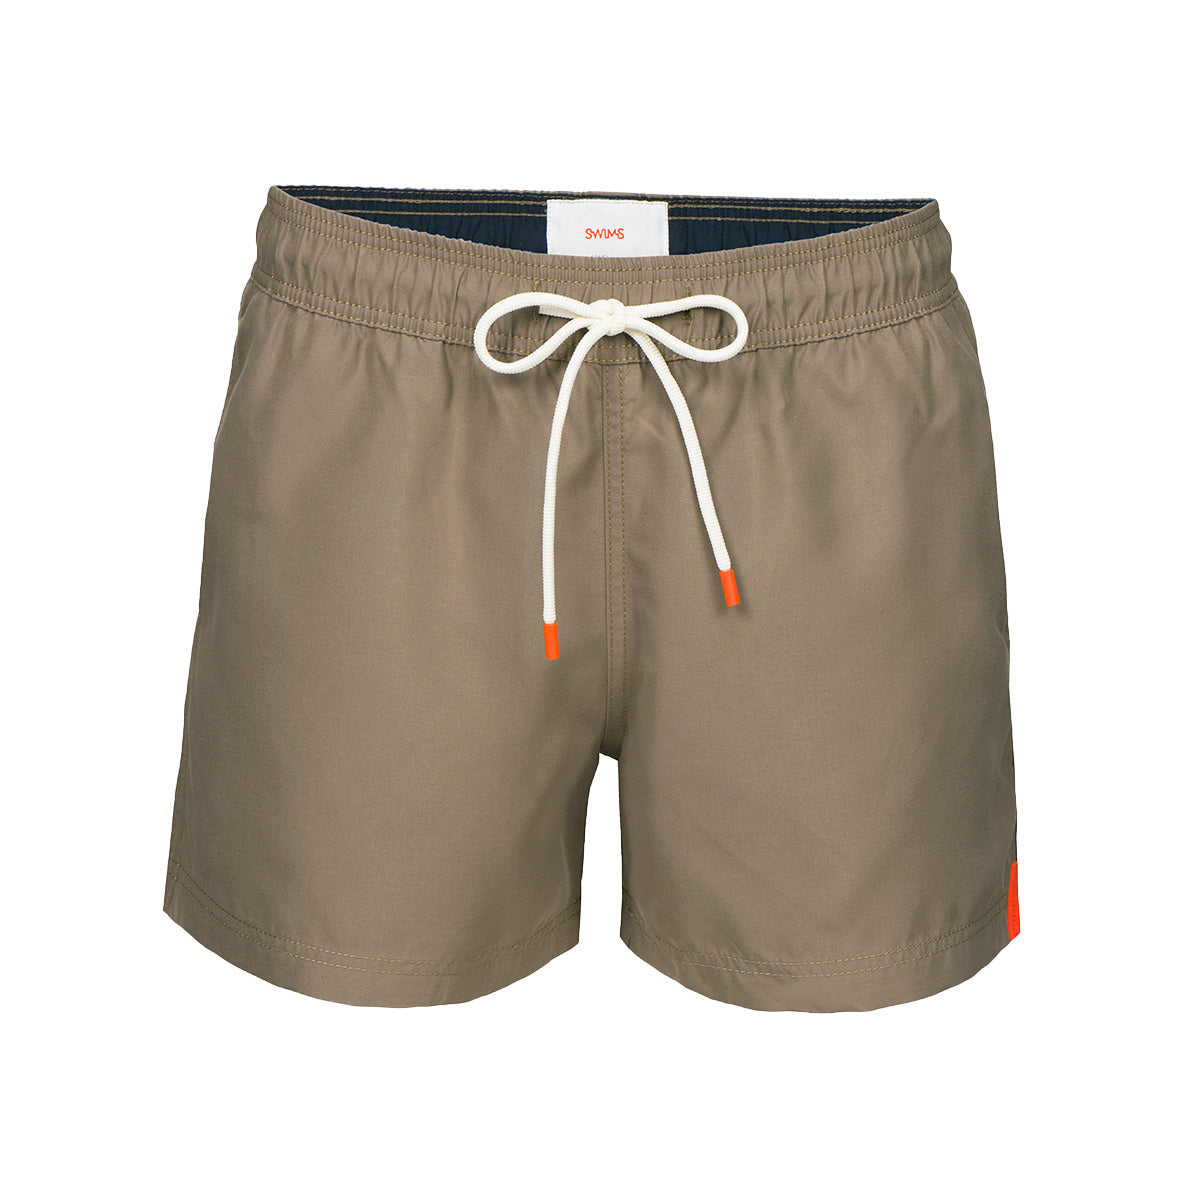 Gavitella Solid Bathing Shorts - background::white,variant::sand